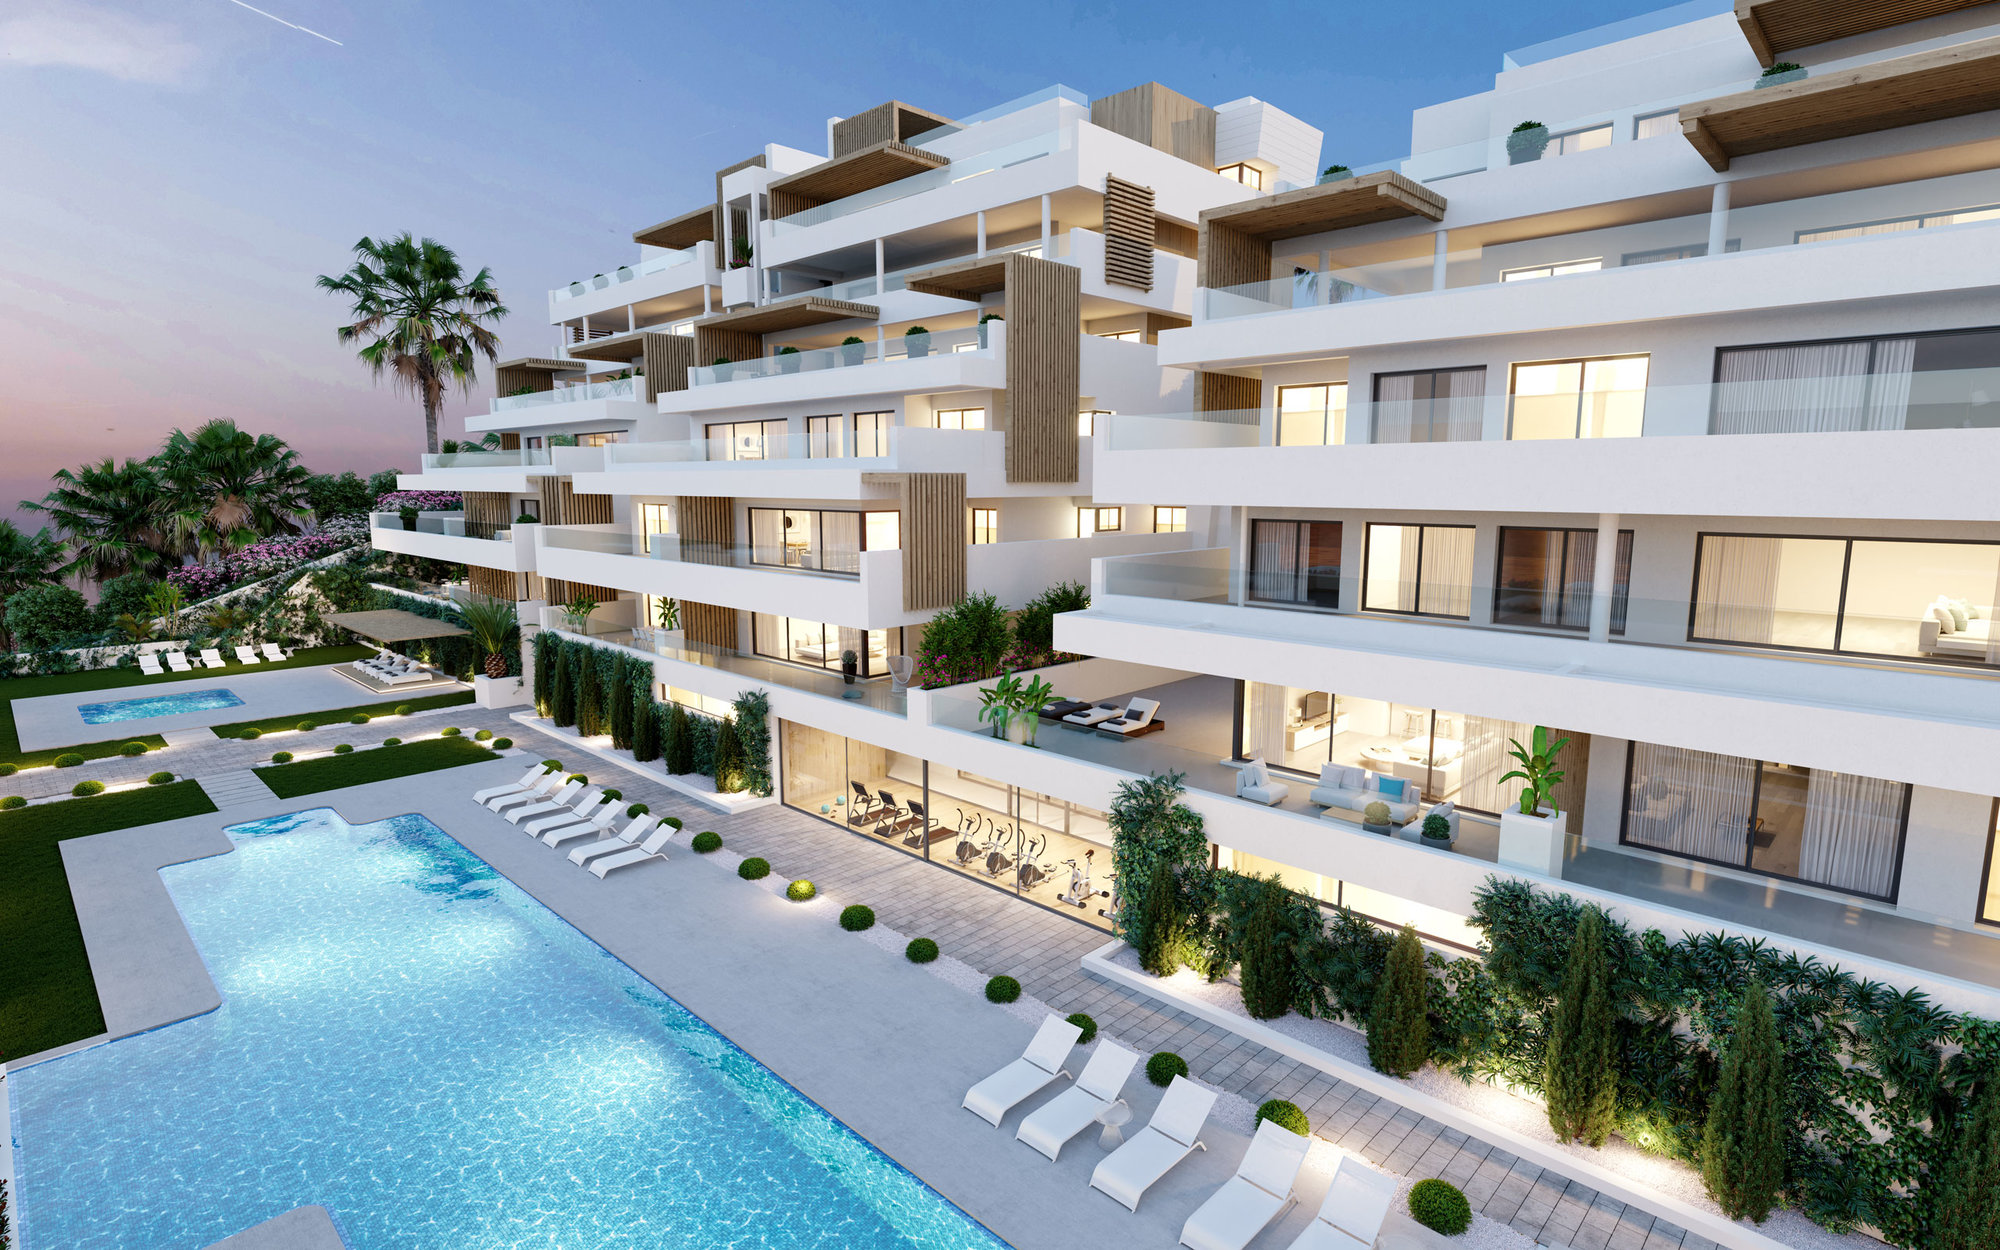 Apartment for sale in Estepona, Estepona Town